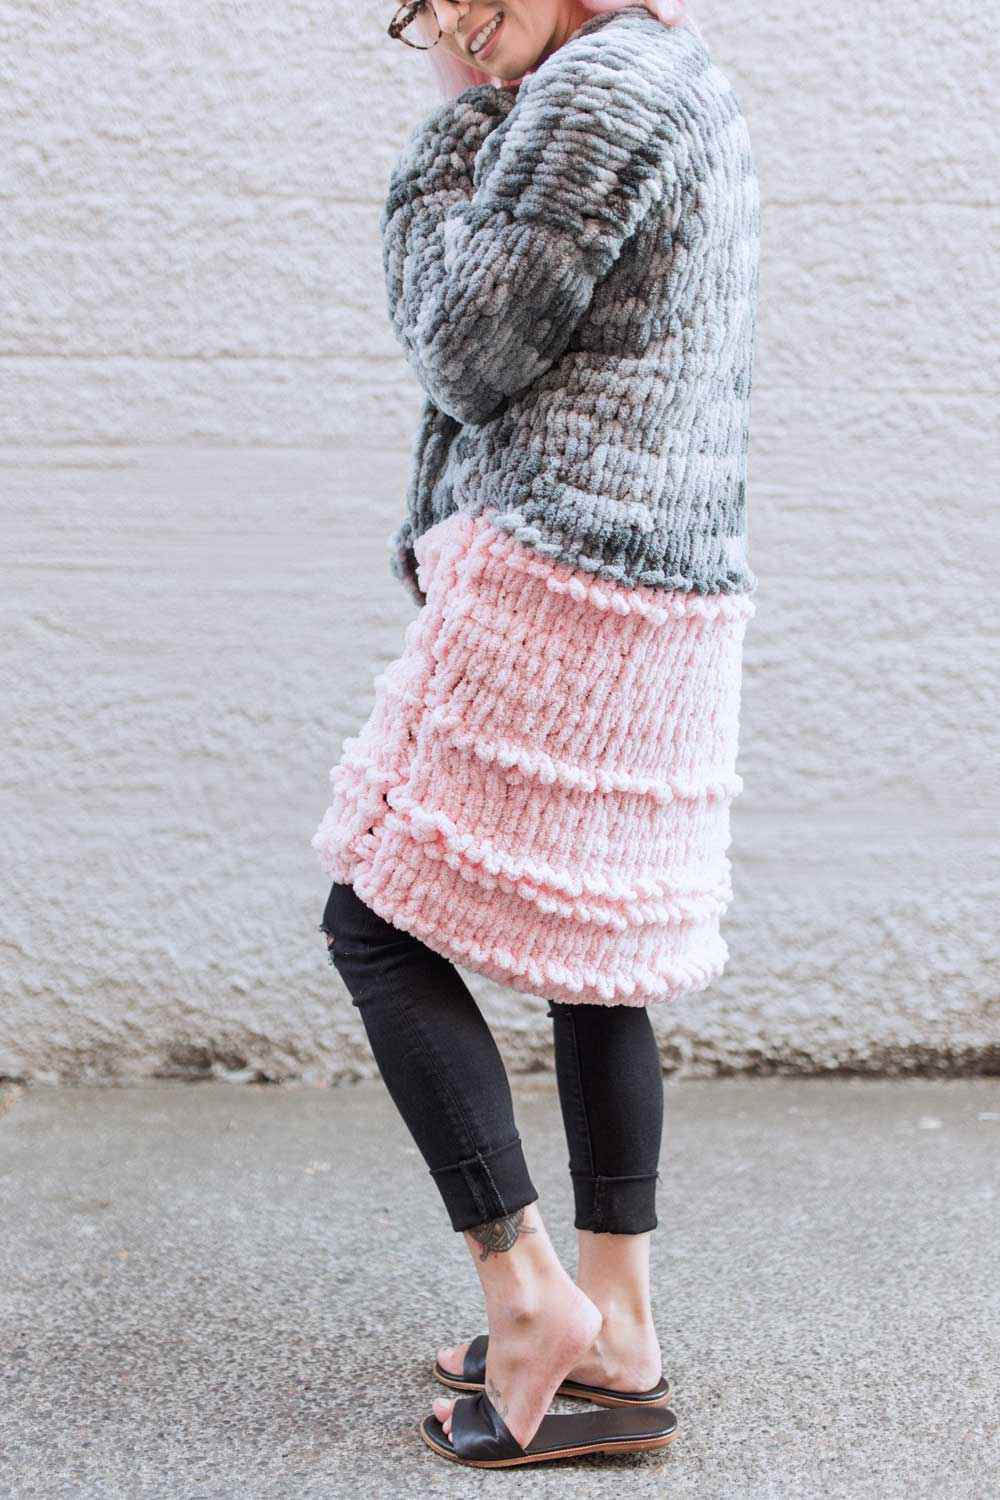 Knit A Giant Sweater With Loop Yarn Knitting